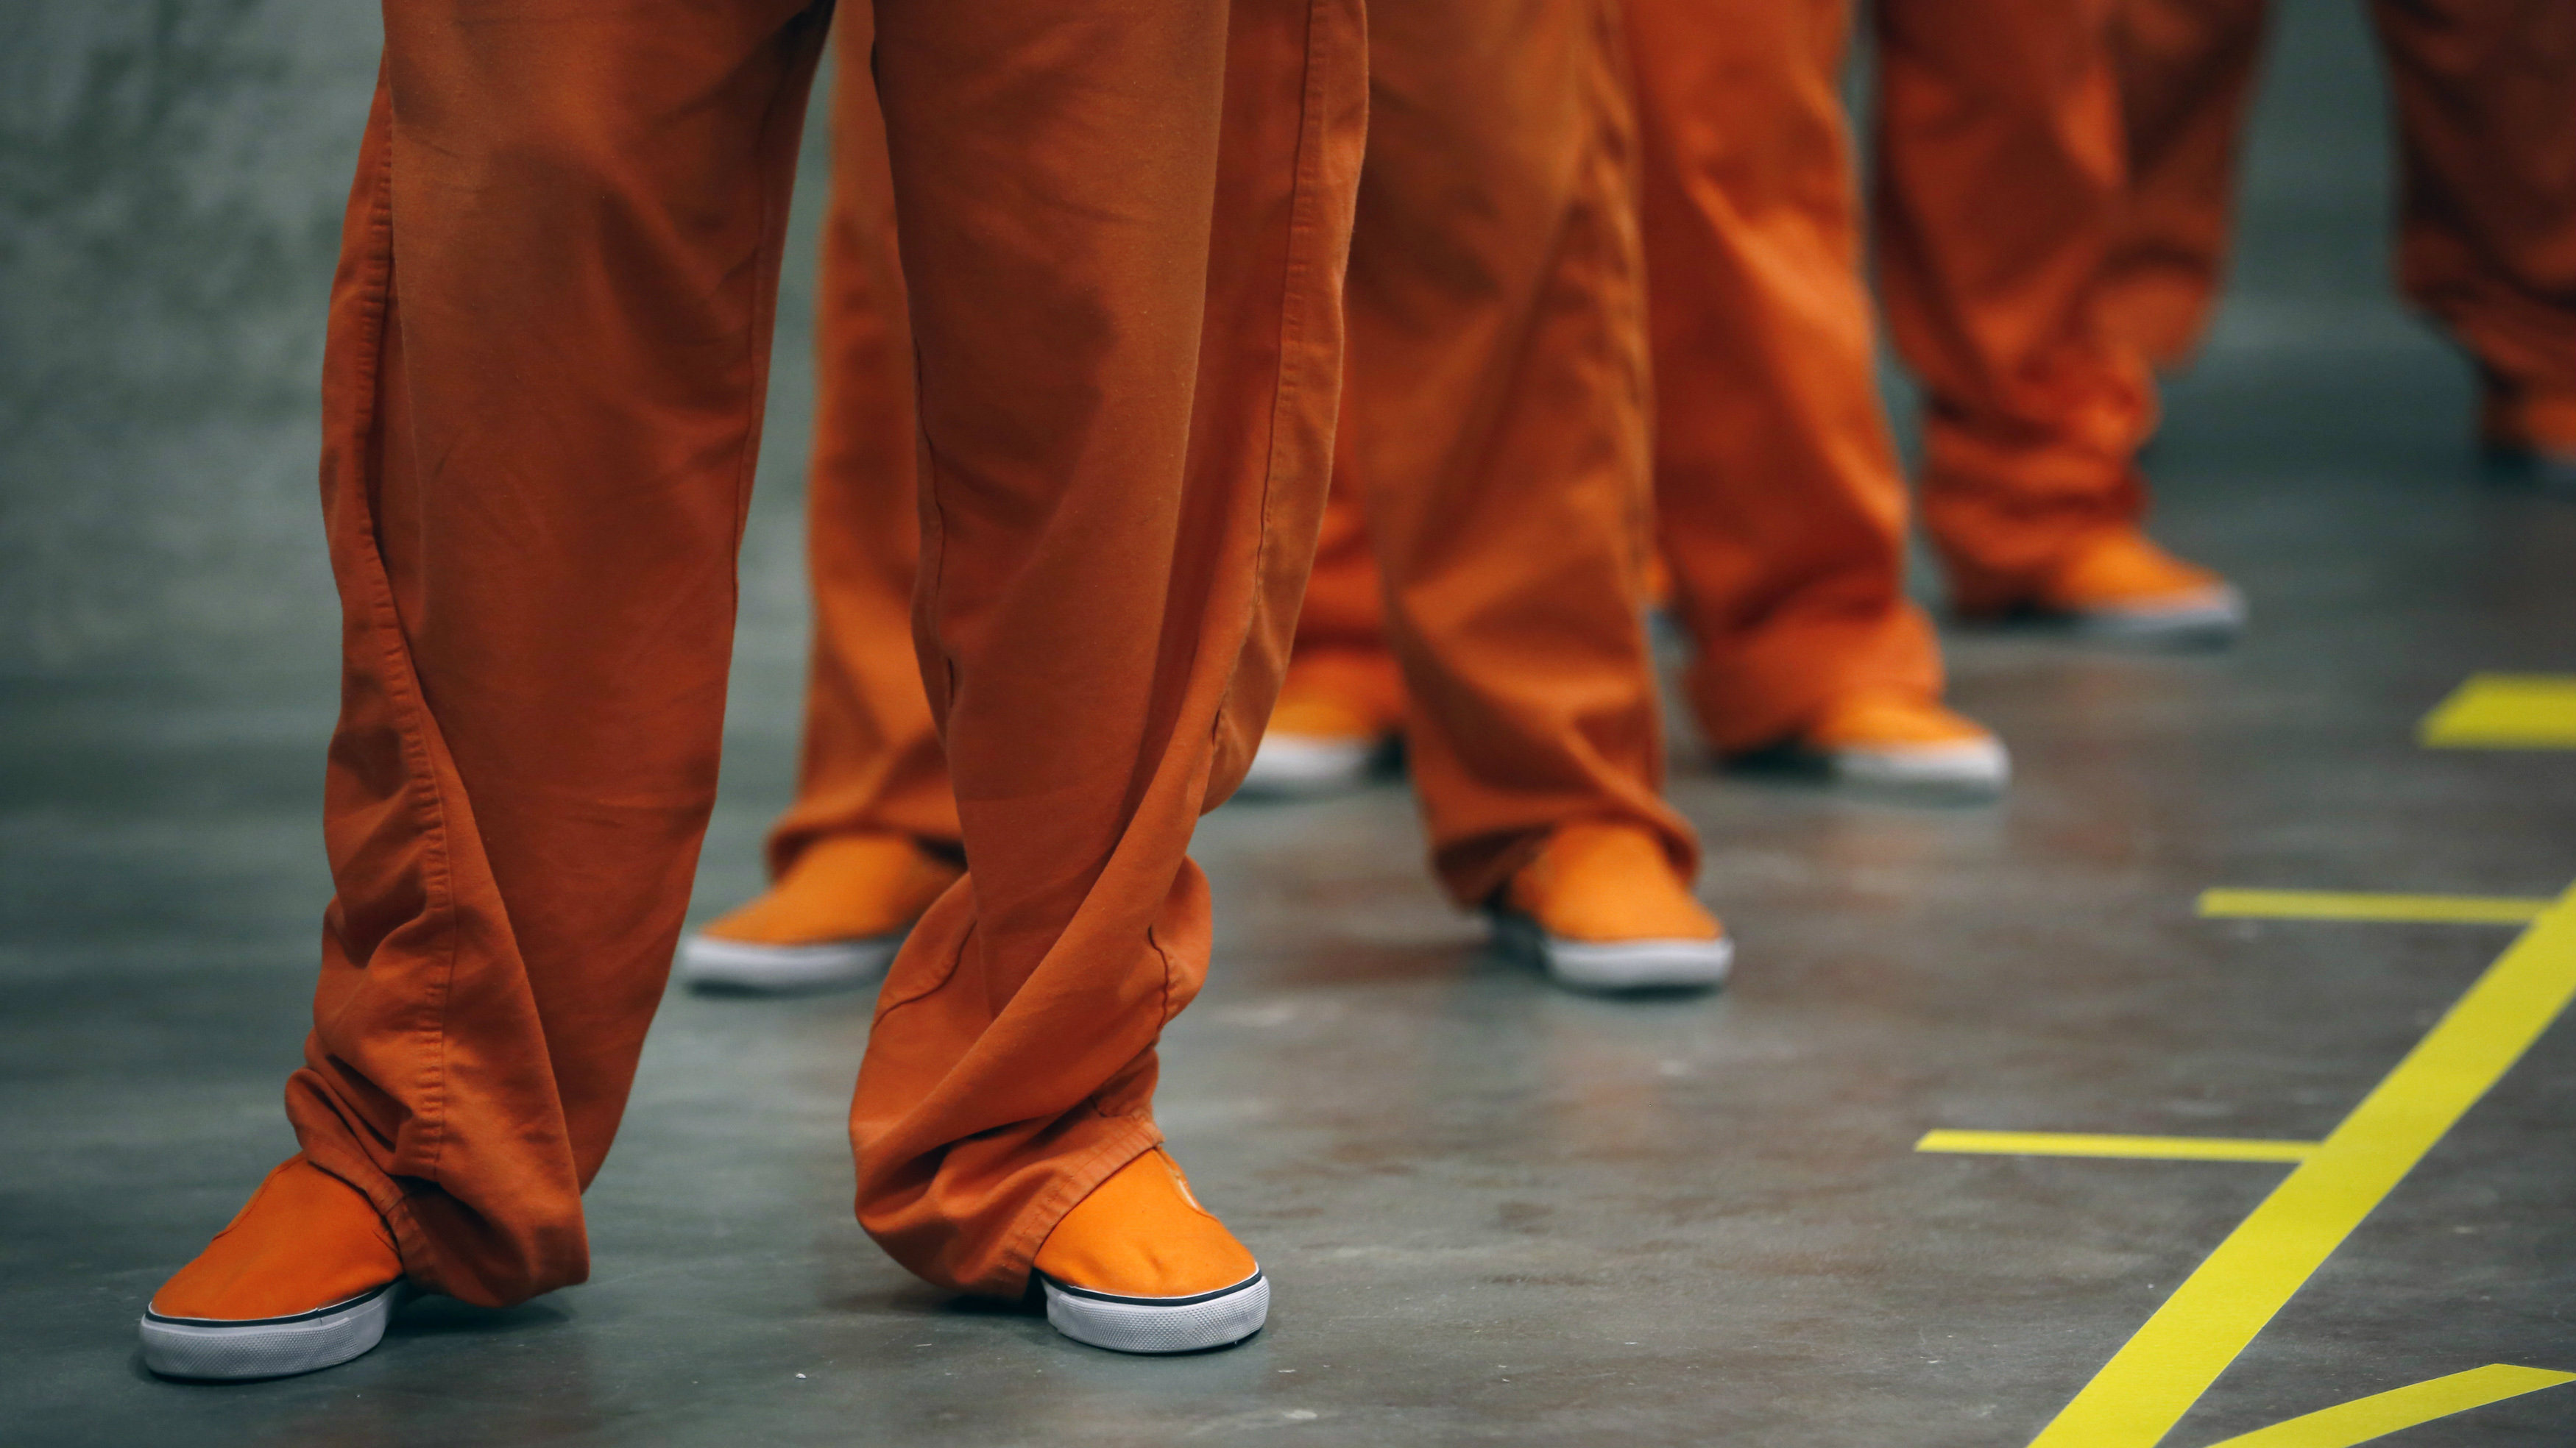 Prison inmates dance in opposition of violence against women on Valentine's Day in San Bruno